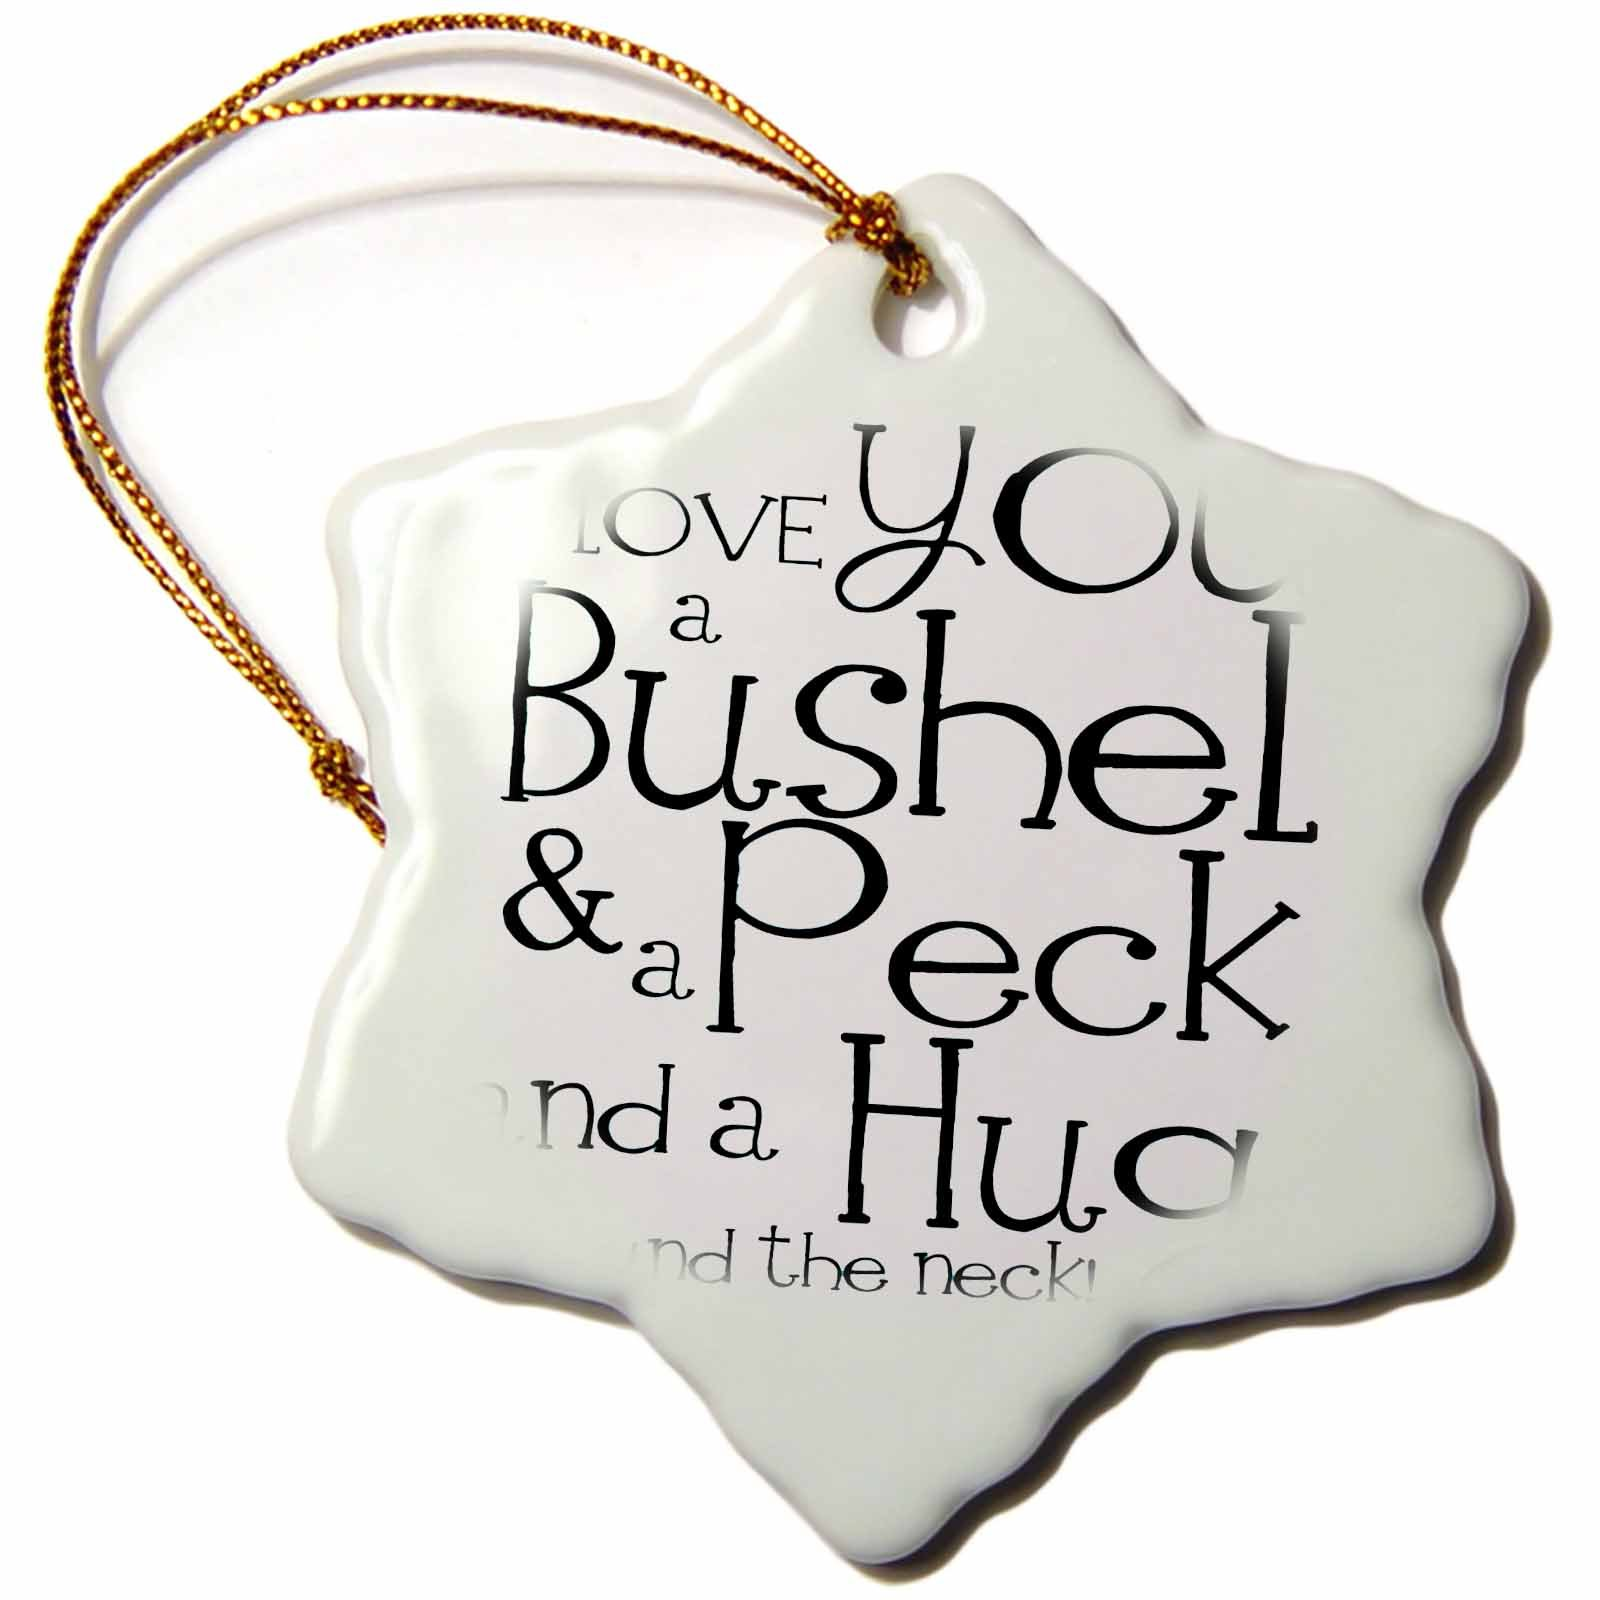 3dRose orn_193477_1 I Love You a Bushel and a Peck. White and Black-Snowflake Ornament, Porcelain, 3-Inch